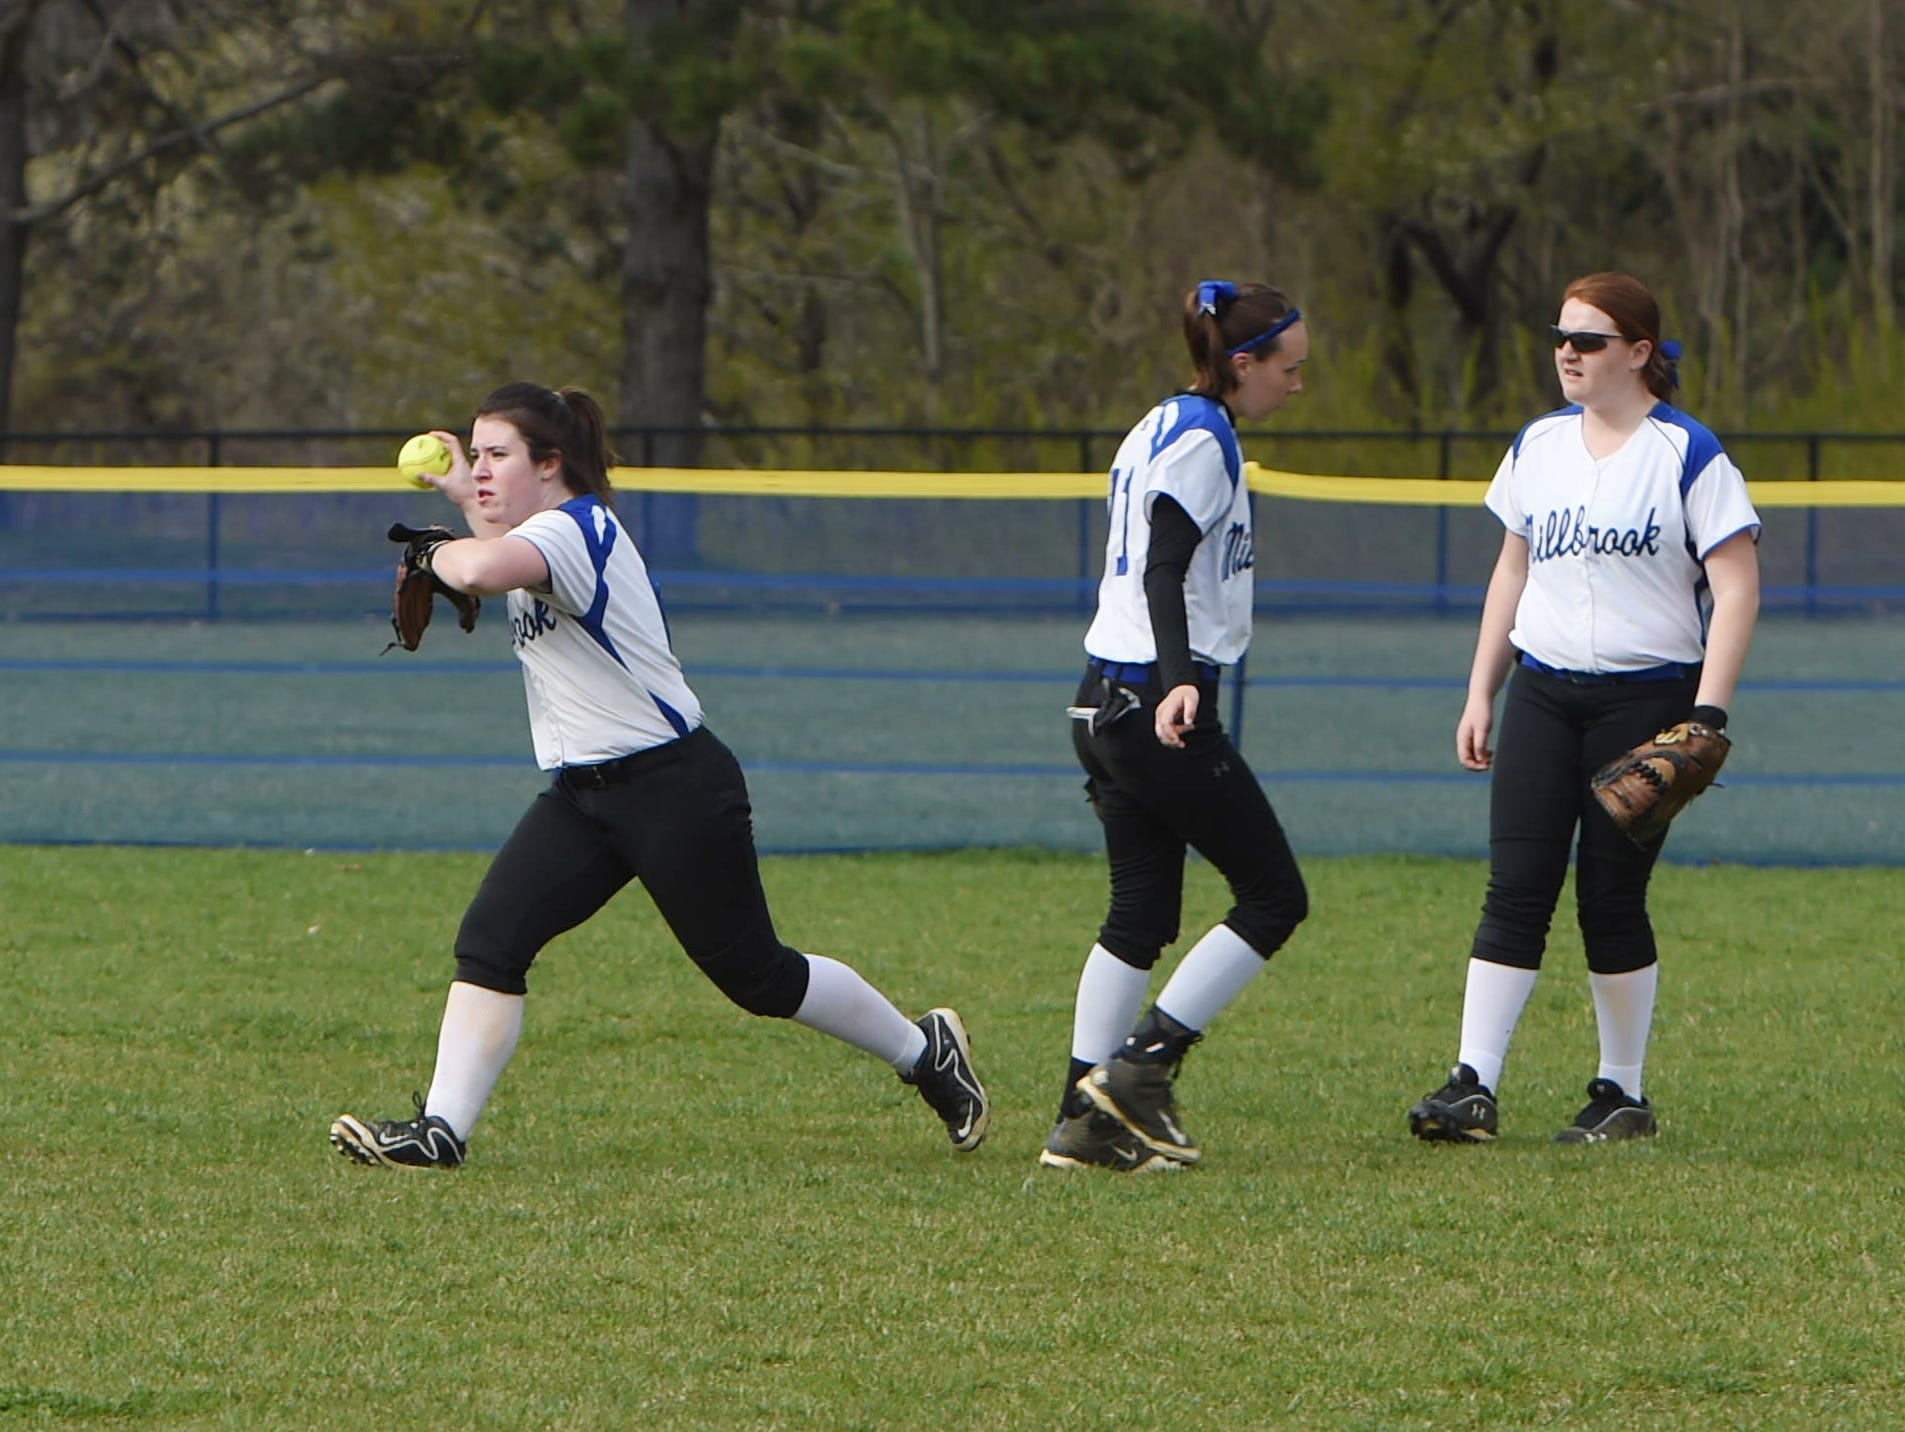 Millbrook's Abby Hackbarth, left, goes to throw the ball to the infield while teammates Ciera Lamont, center, and Tiffany Race, right, get back into position during Monday's game against Pine Plains.